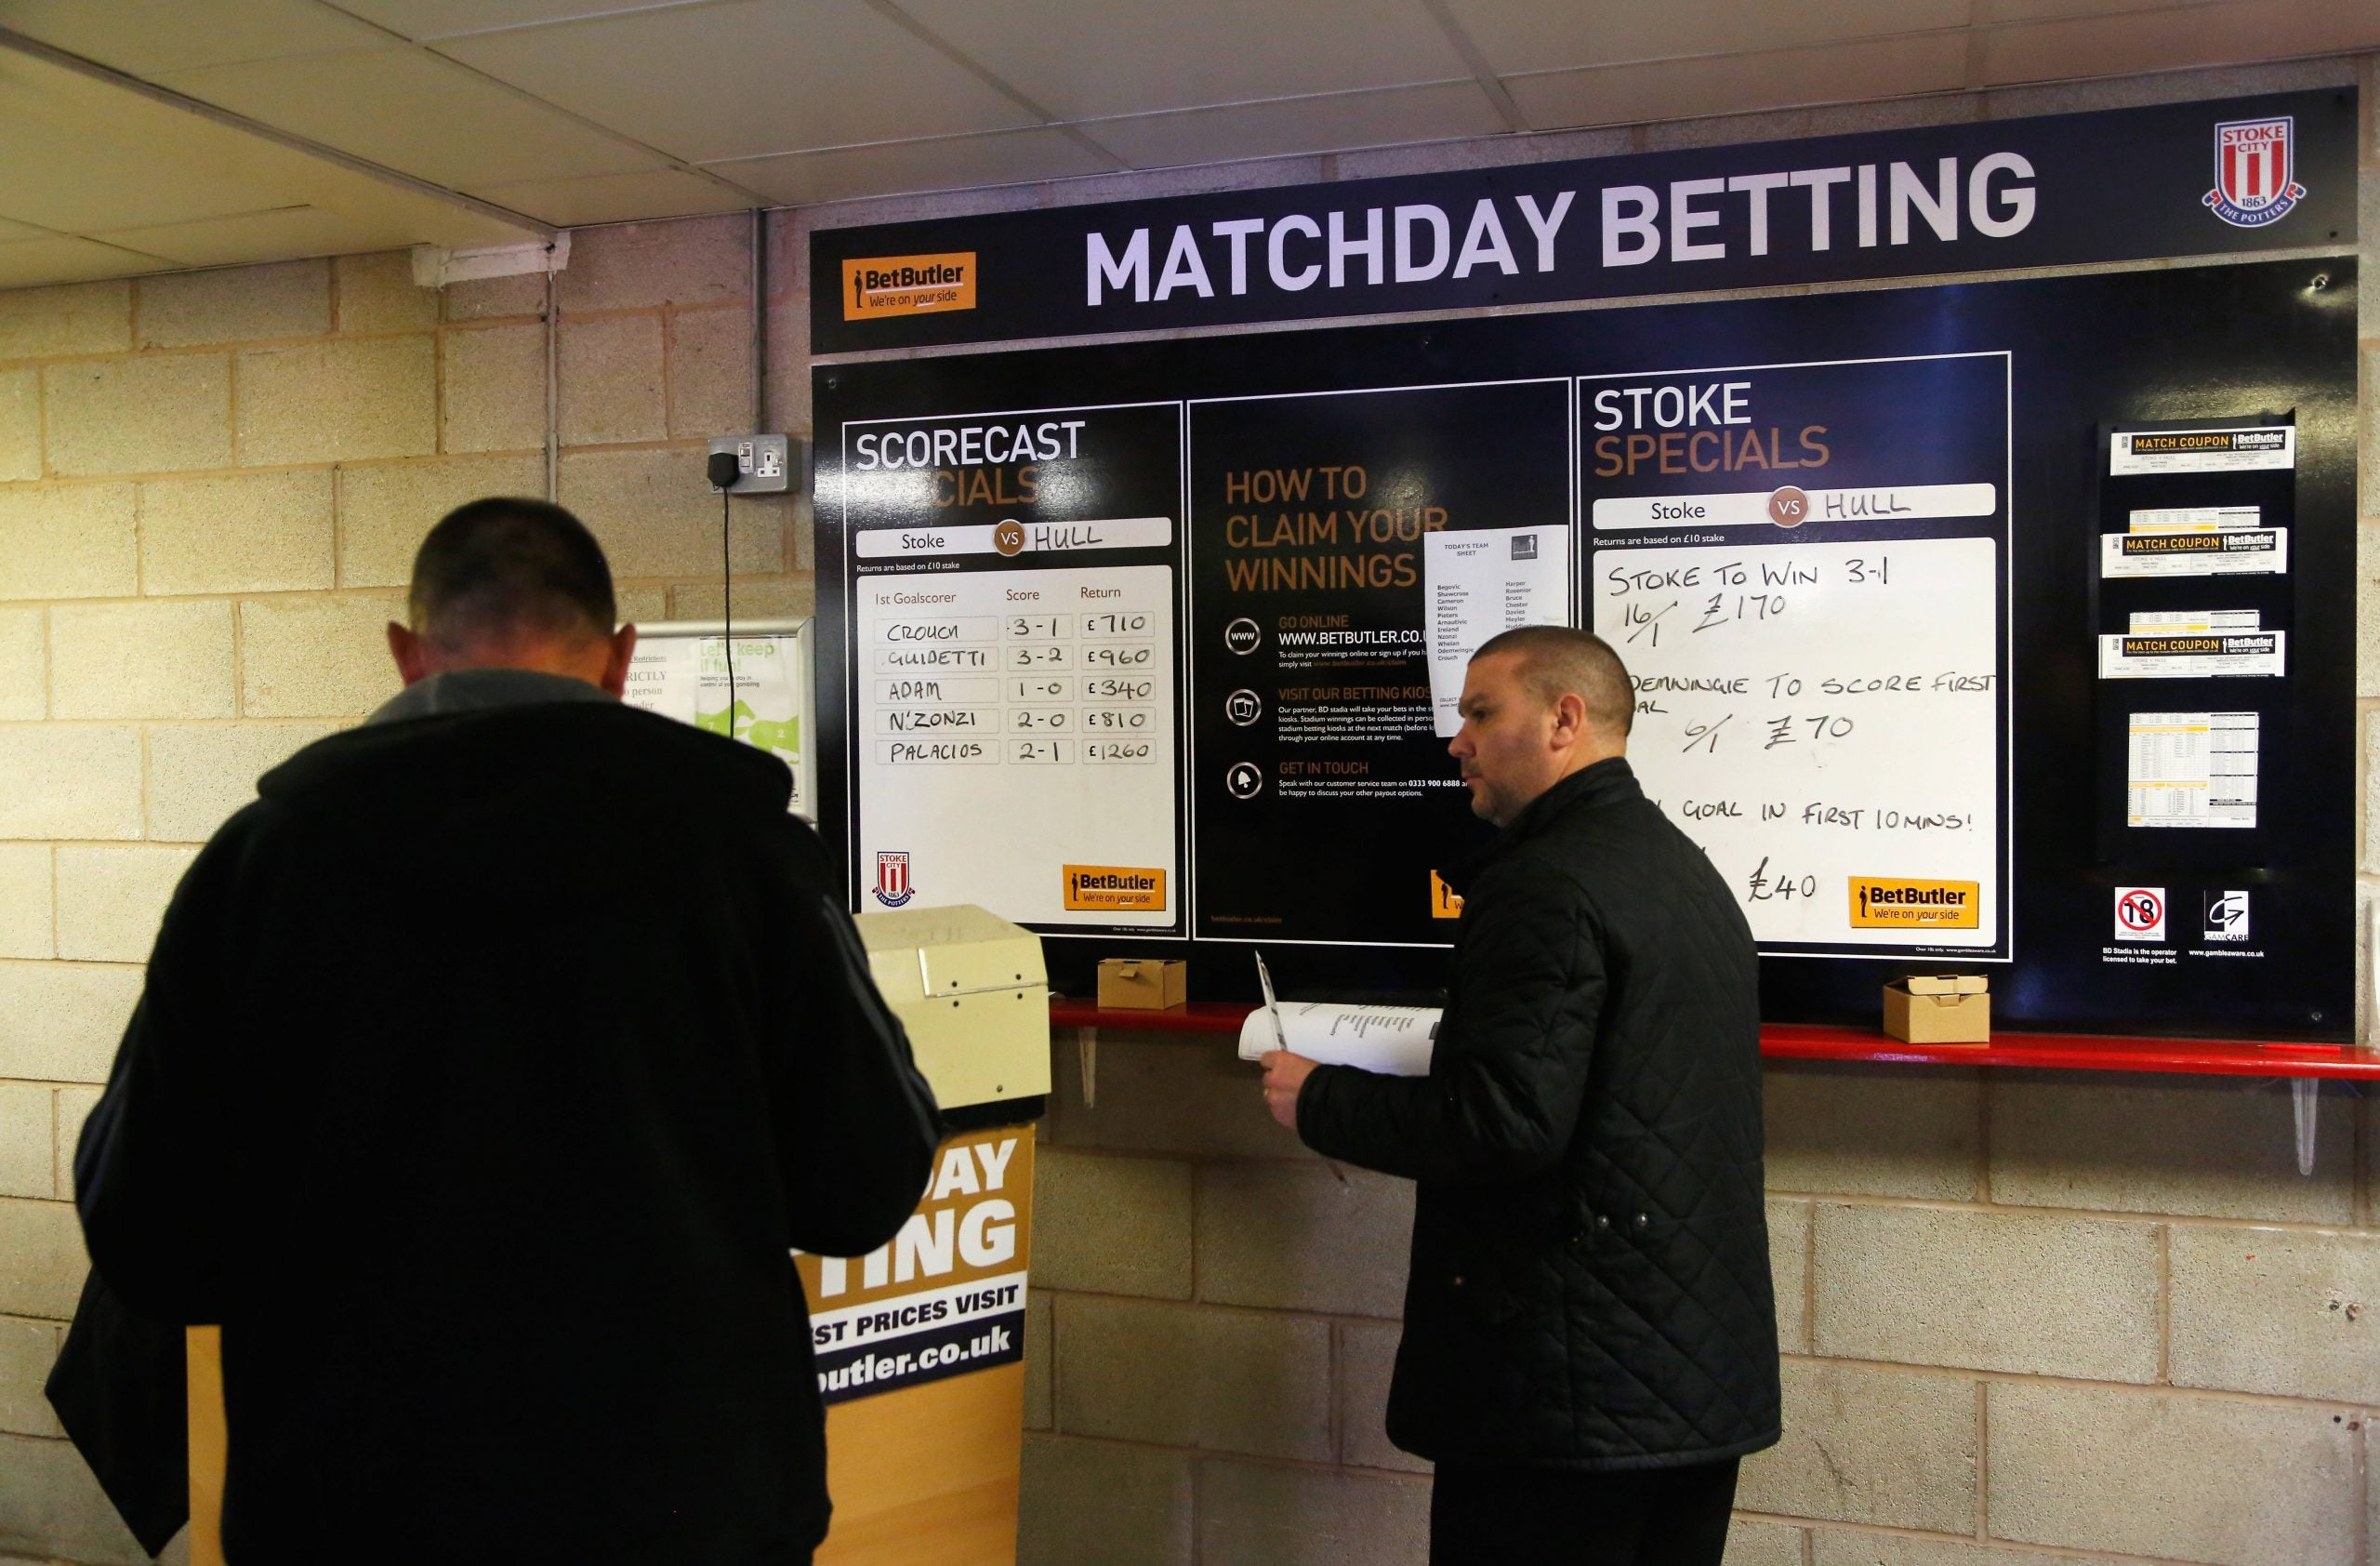 Gambling has always been a part of sport – but today, football seems a mere branch of the betting industry